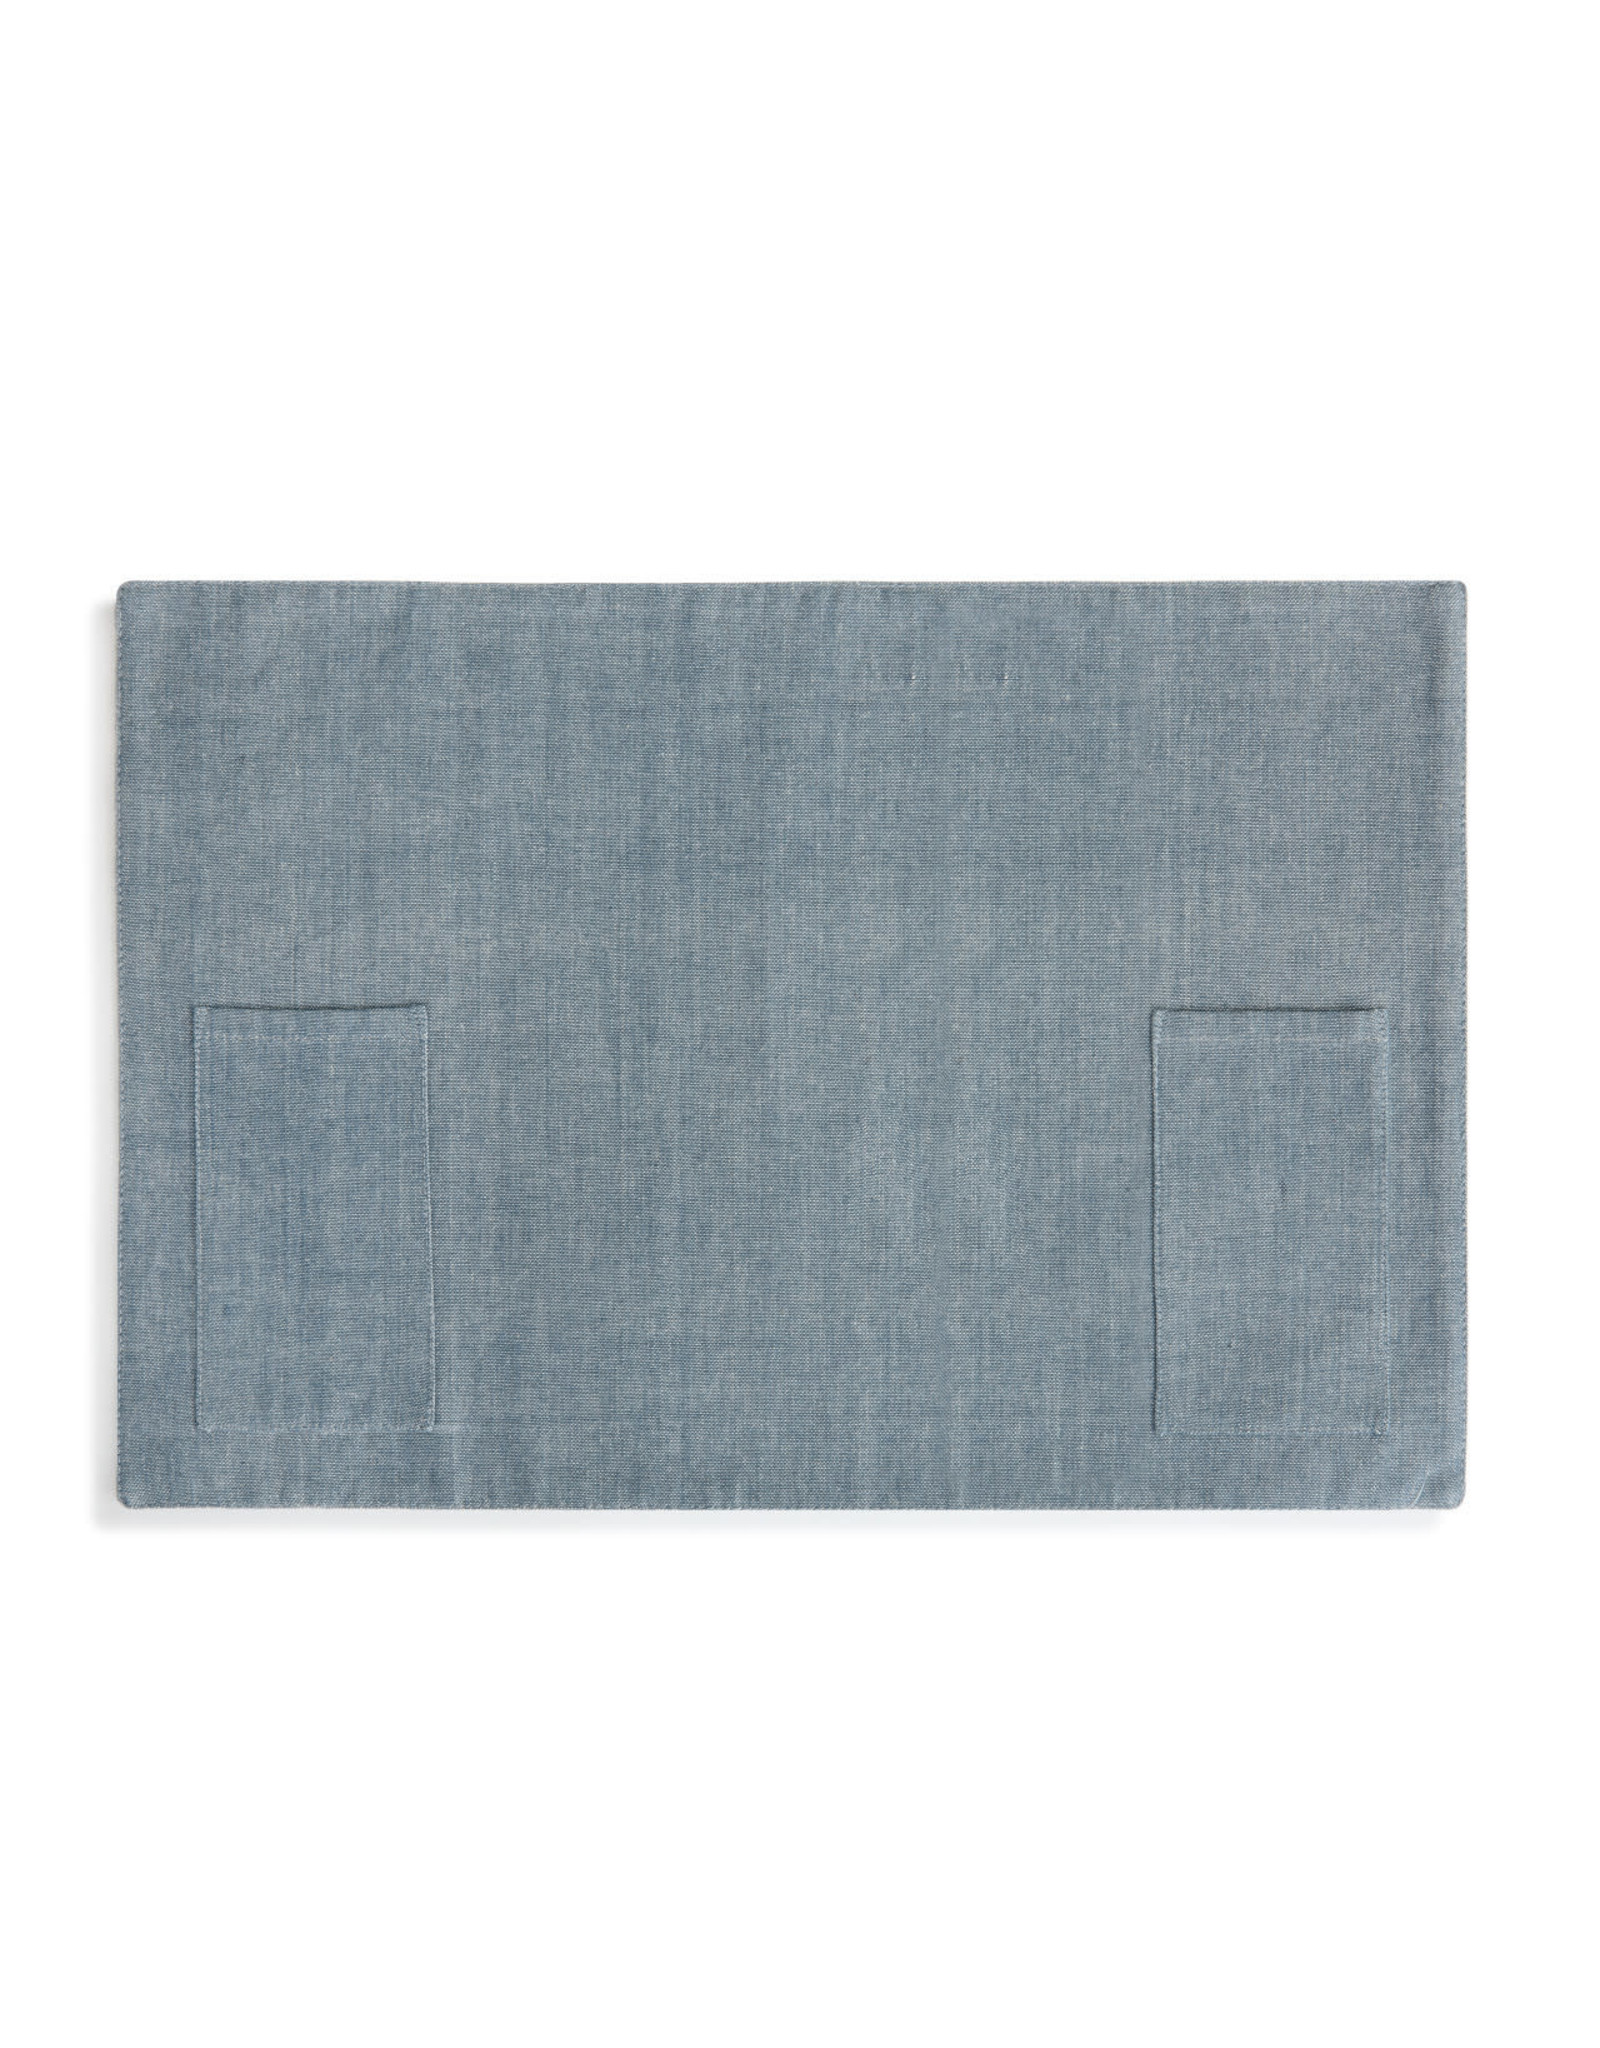 Demdaco Chambray Utensil Pocket Placemat